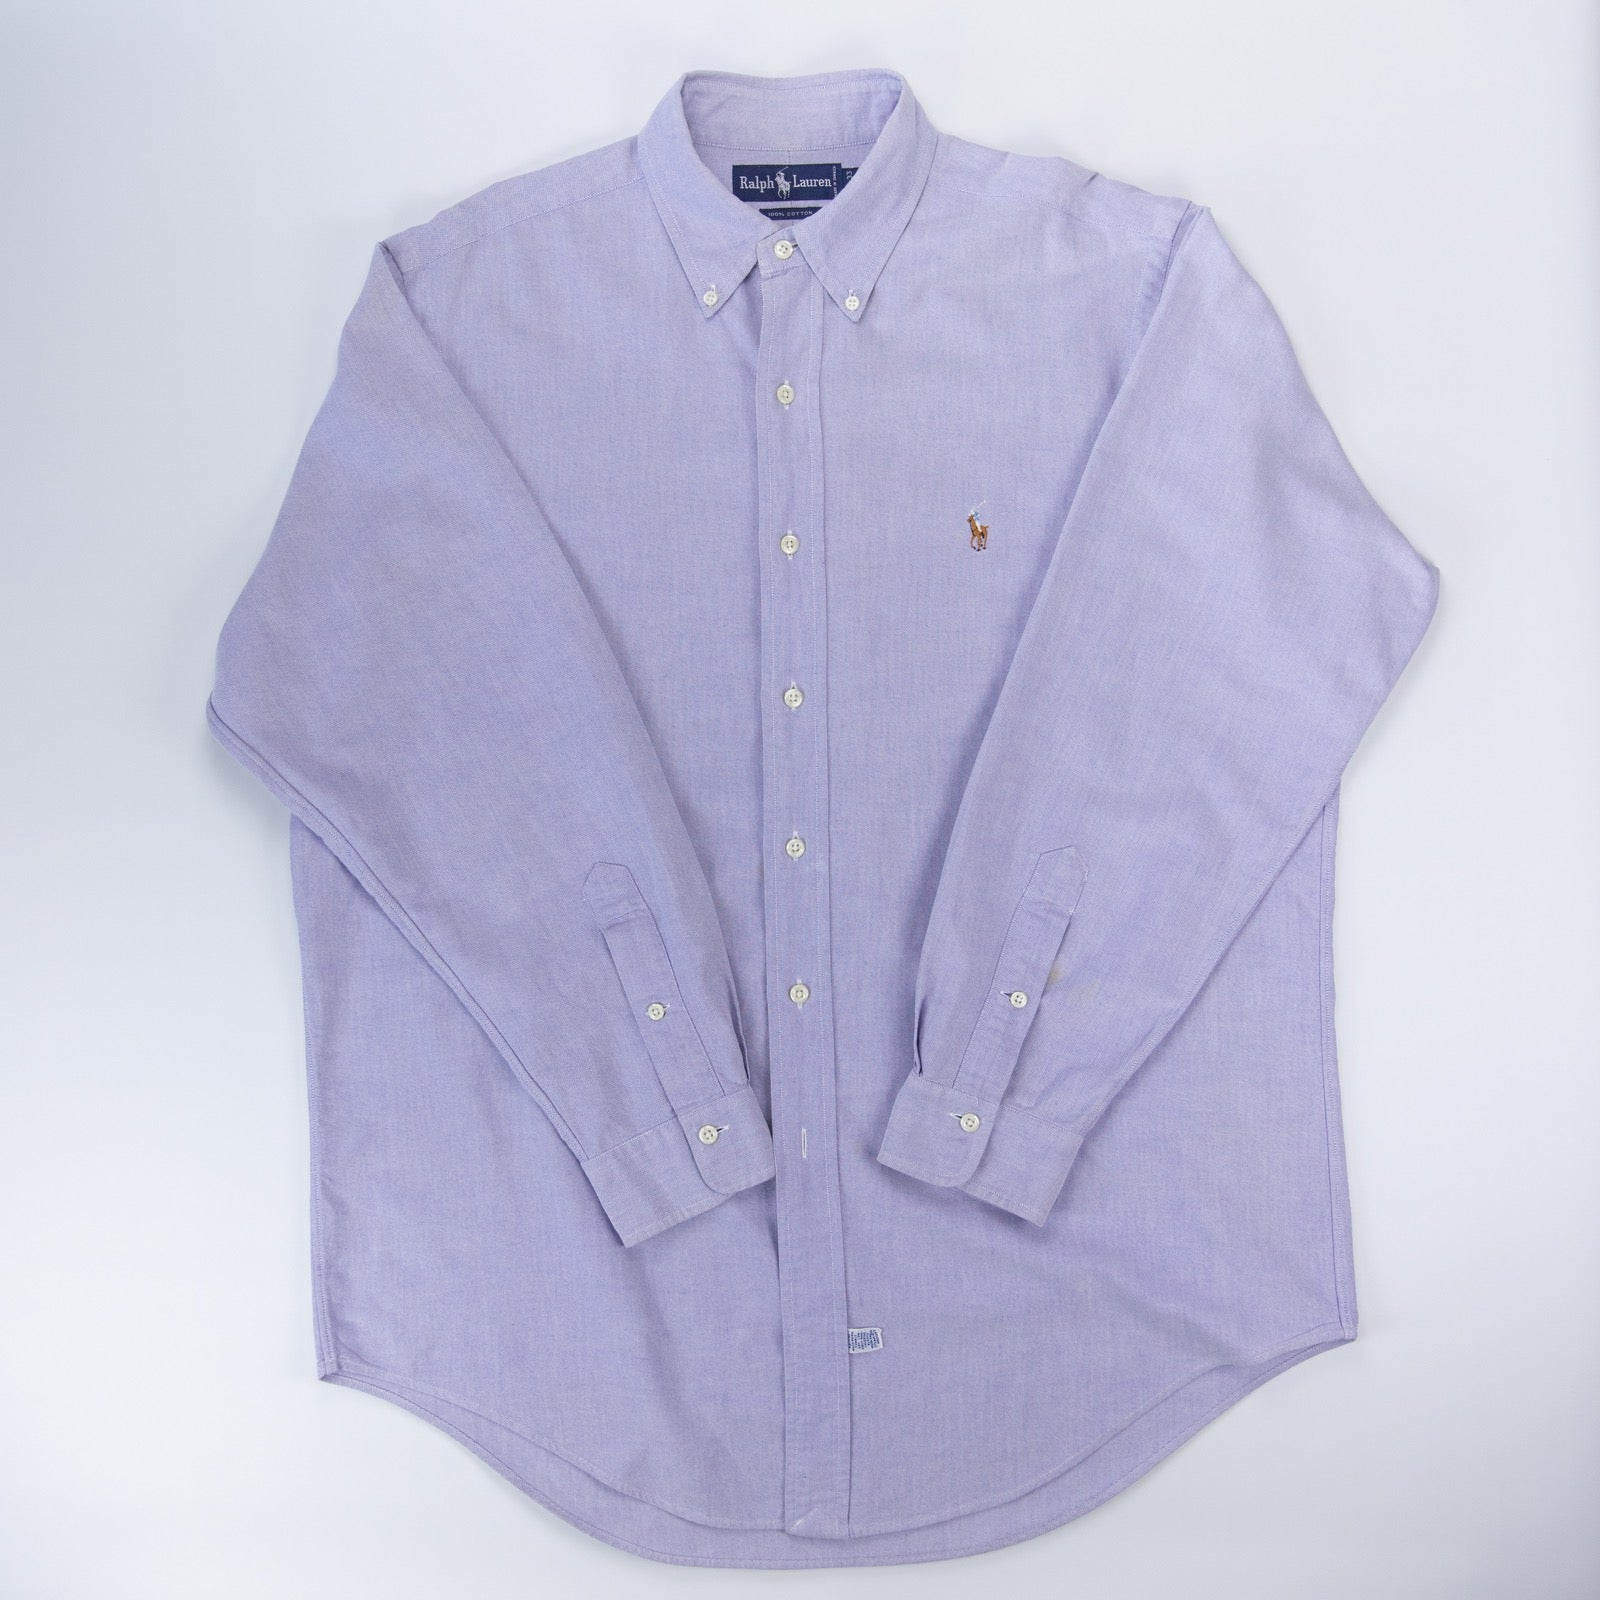 Ralph Lauren Casual Shirt Blue - L/XL